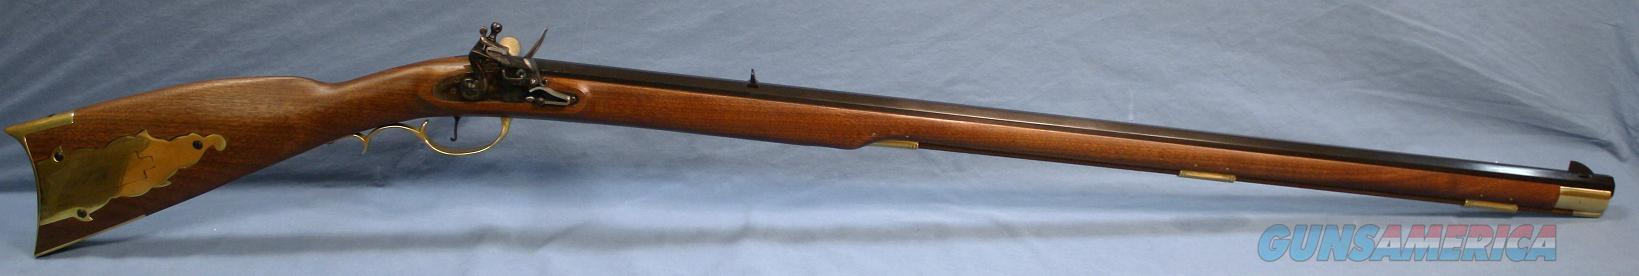 Pedersoli Taylor's & Co. Kentucky Single Shot Flinlock Rifle 45 Caliber Free Shipping and No Credit Card Fees!   Guns > Rifles > Pedersoli Rifles > Flintlock